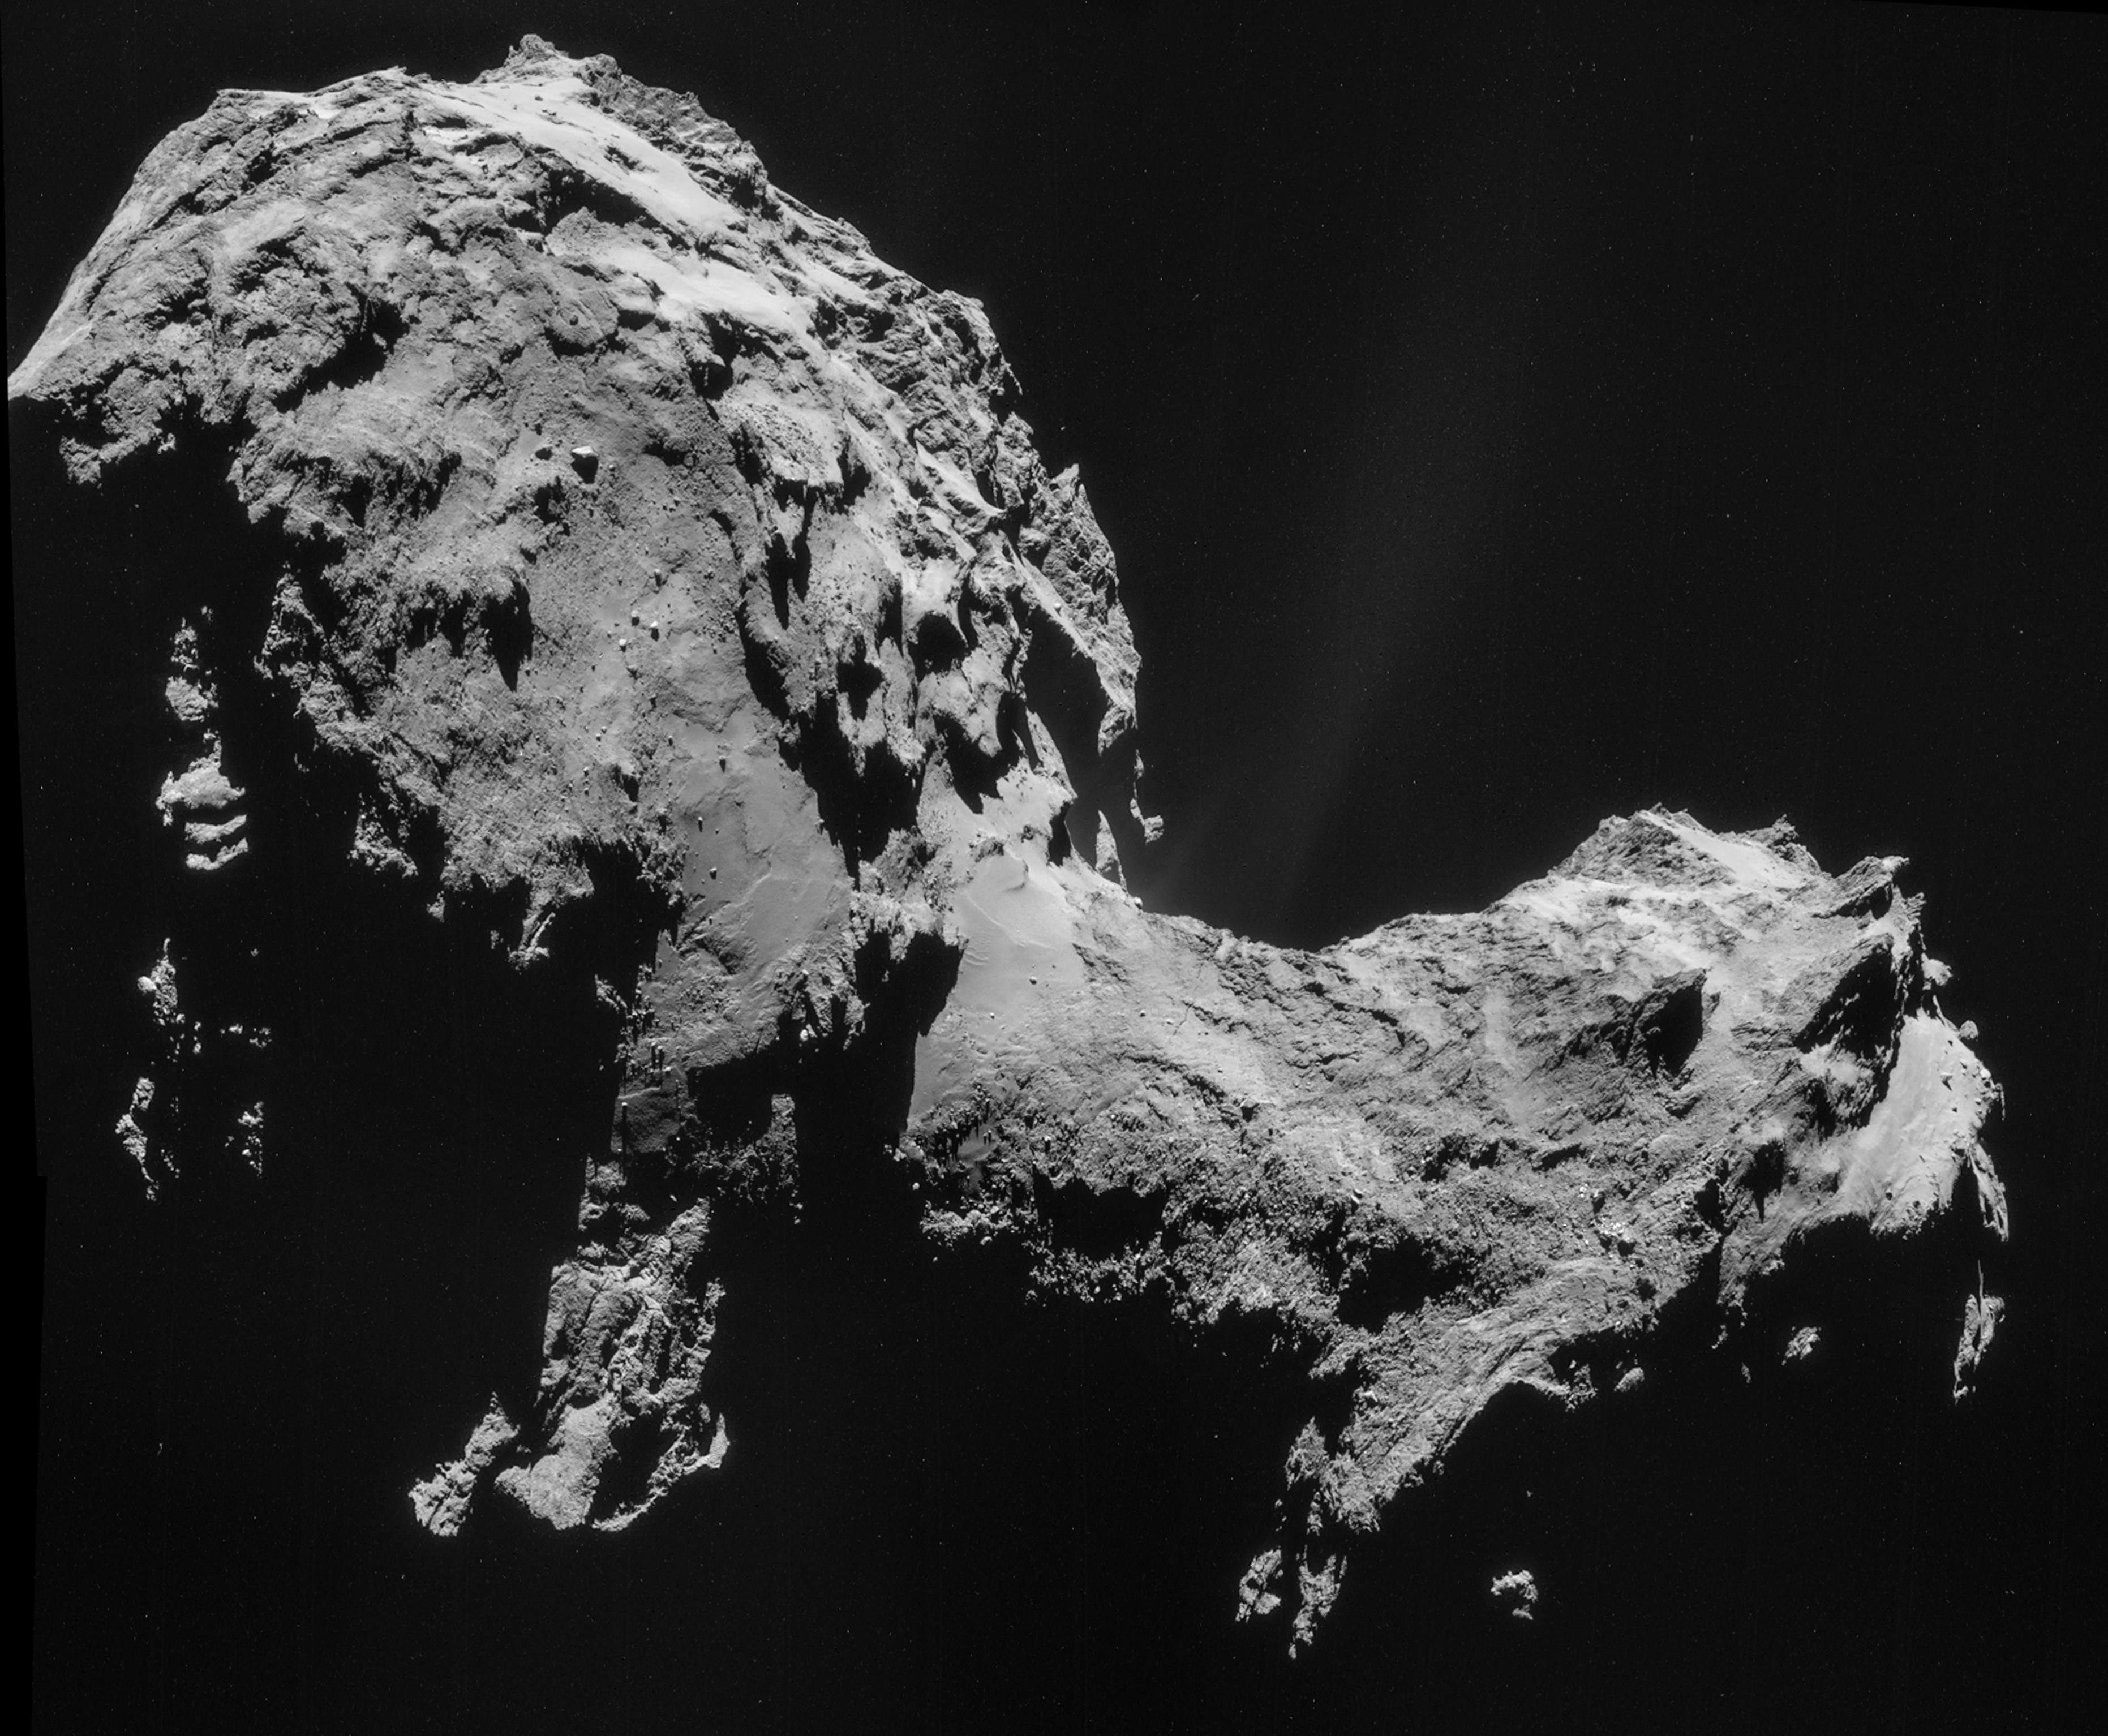 Before the historic comet landing, Philae faces many dangers